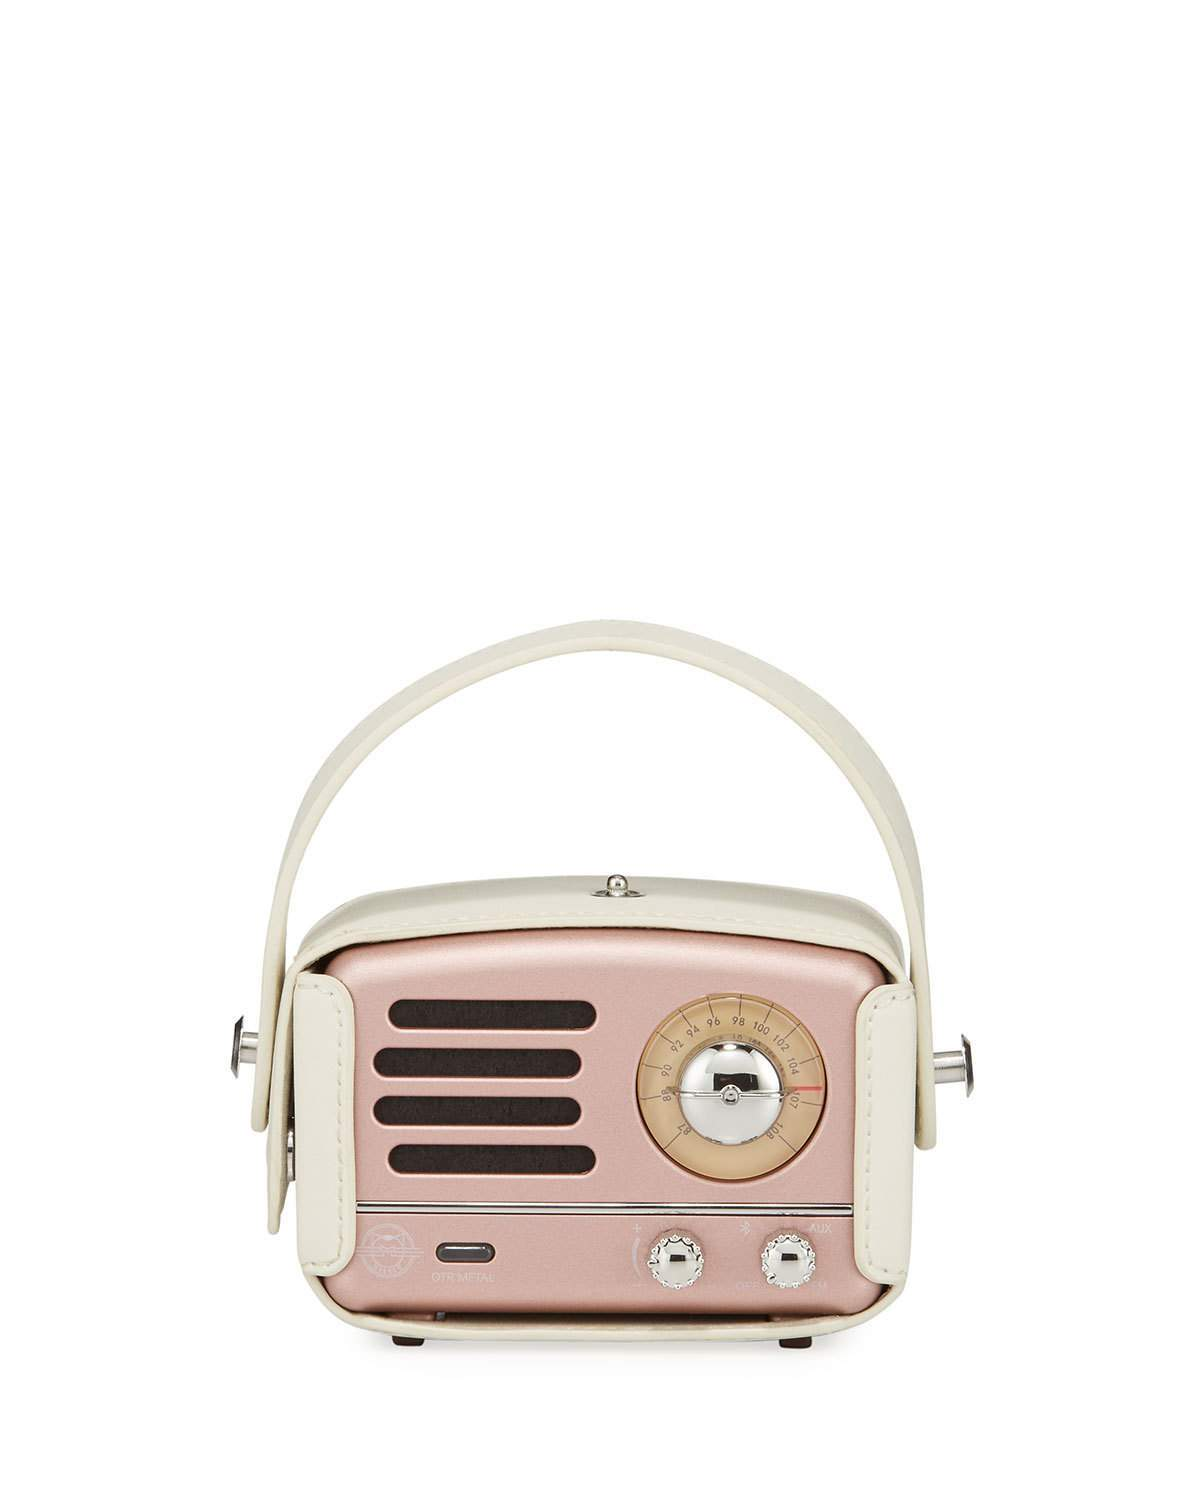 muzen portable retro radio